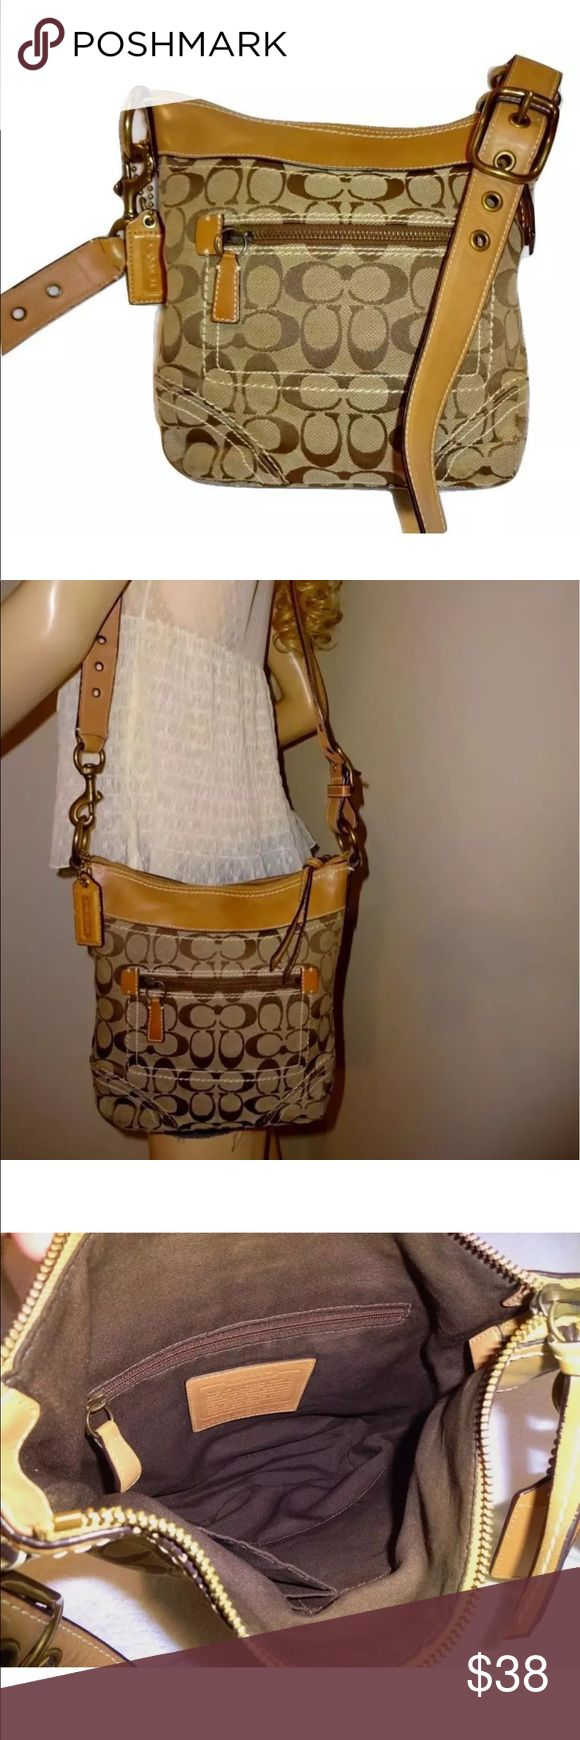 AUTHENTIC COACH CROSSOVER PURSE IN GREAT SHAPE! AUTHENTIC COACH CROSSOVER PURSE IN GREAT SHAPE! Coach Bags Crossbody Bags